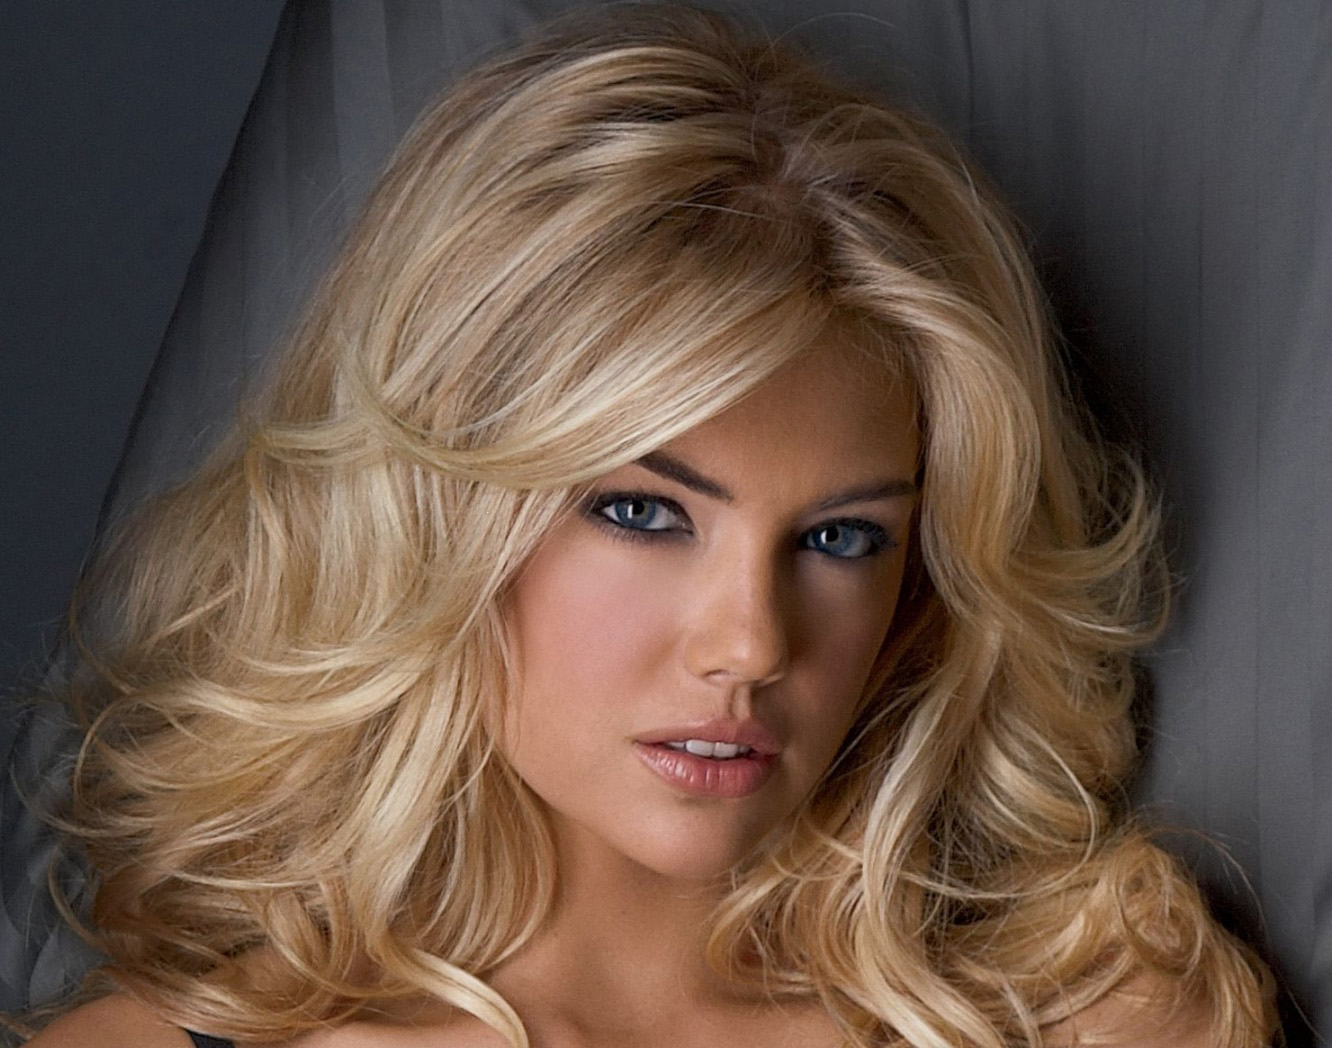 Wallpaper Justin Bieber: Kate Upton Hairstyle Pictures